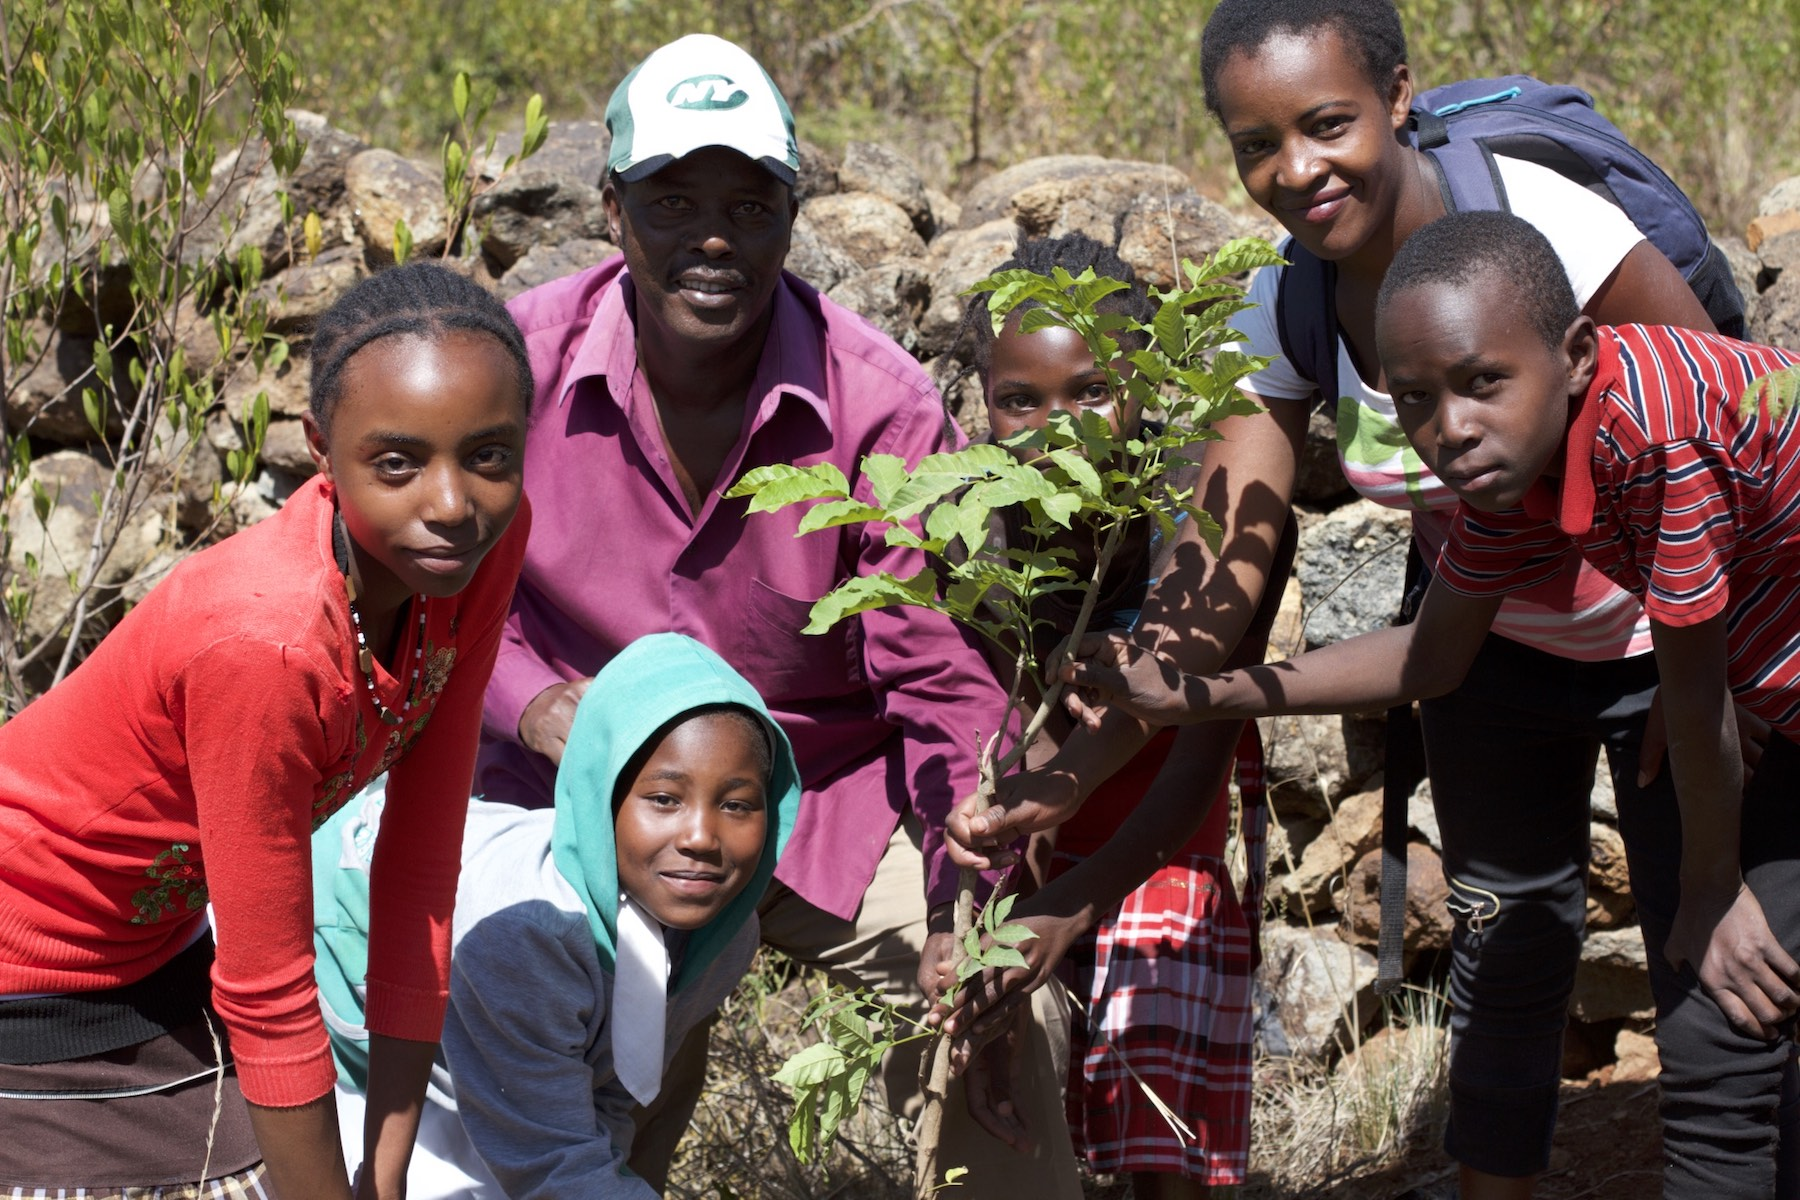 Tree planting at Wana Duma Eco-Village in honor of Earth Day and Wangari Maathai